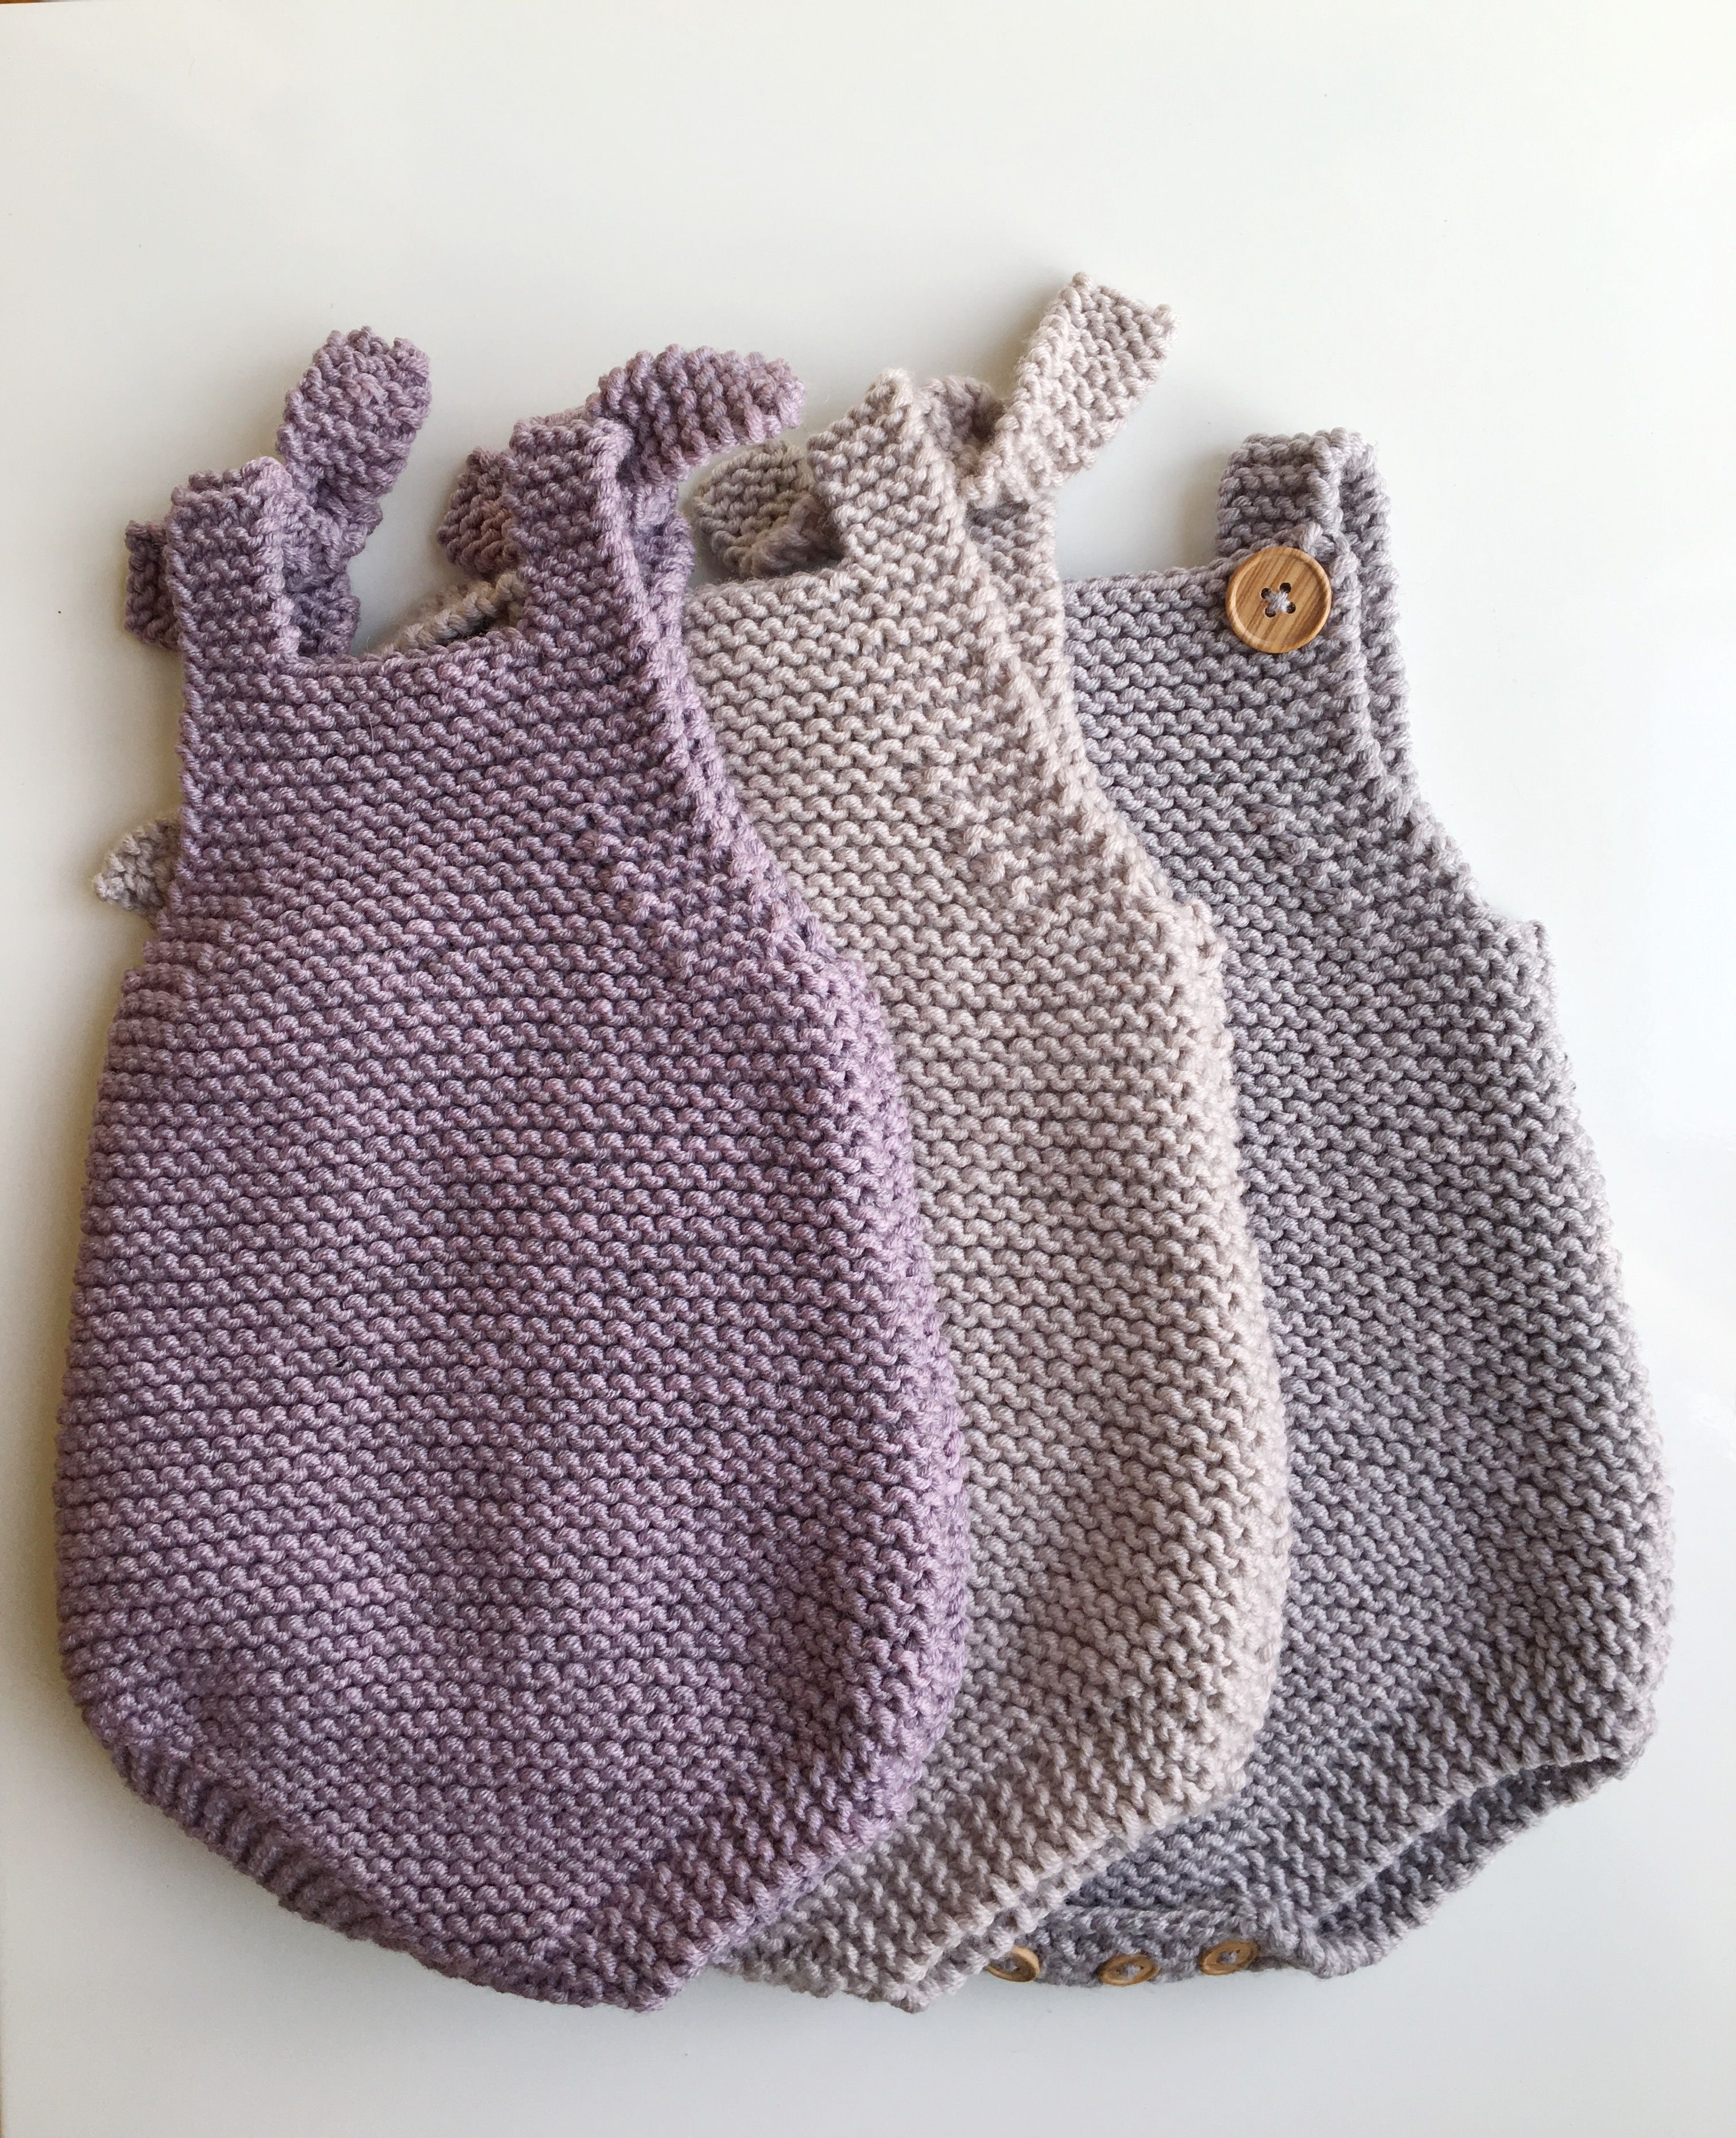 e7e1abcdcac3 Baby All-In-One Knitting Pattern - Eve Romper PDF Knitting Pattern ...